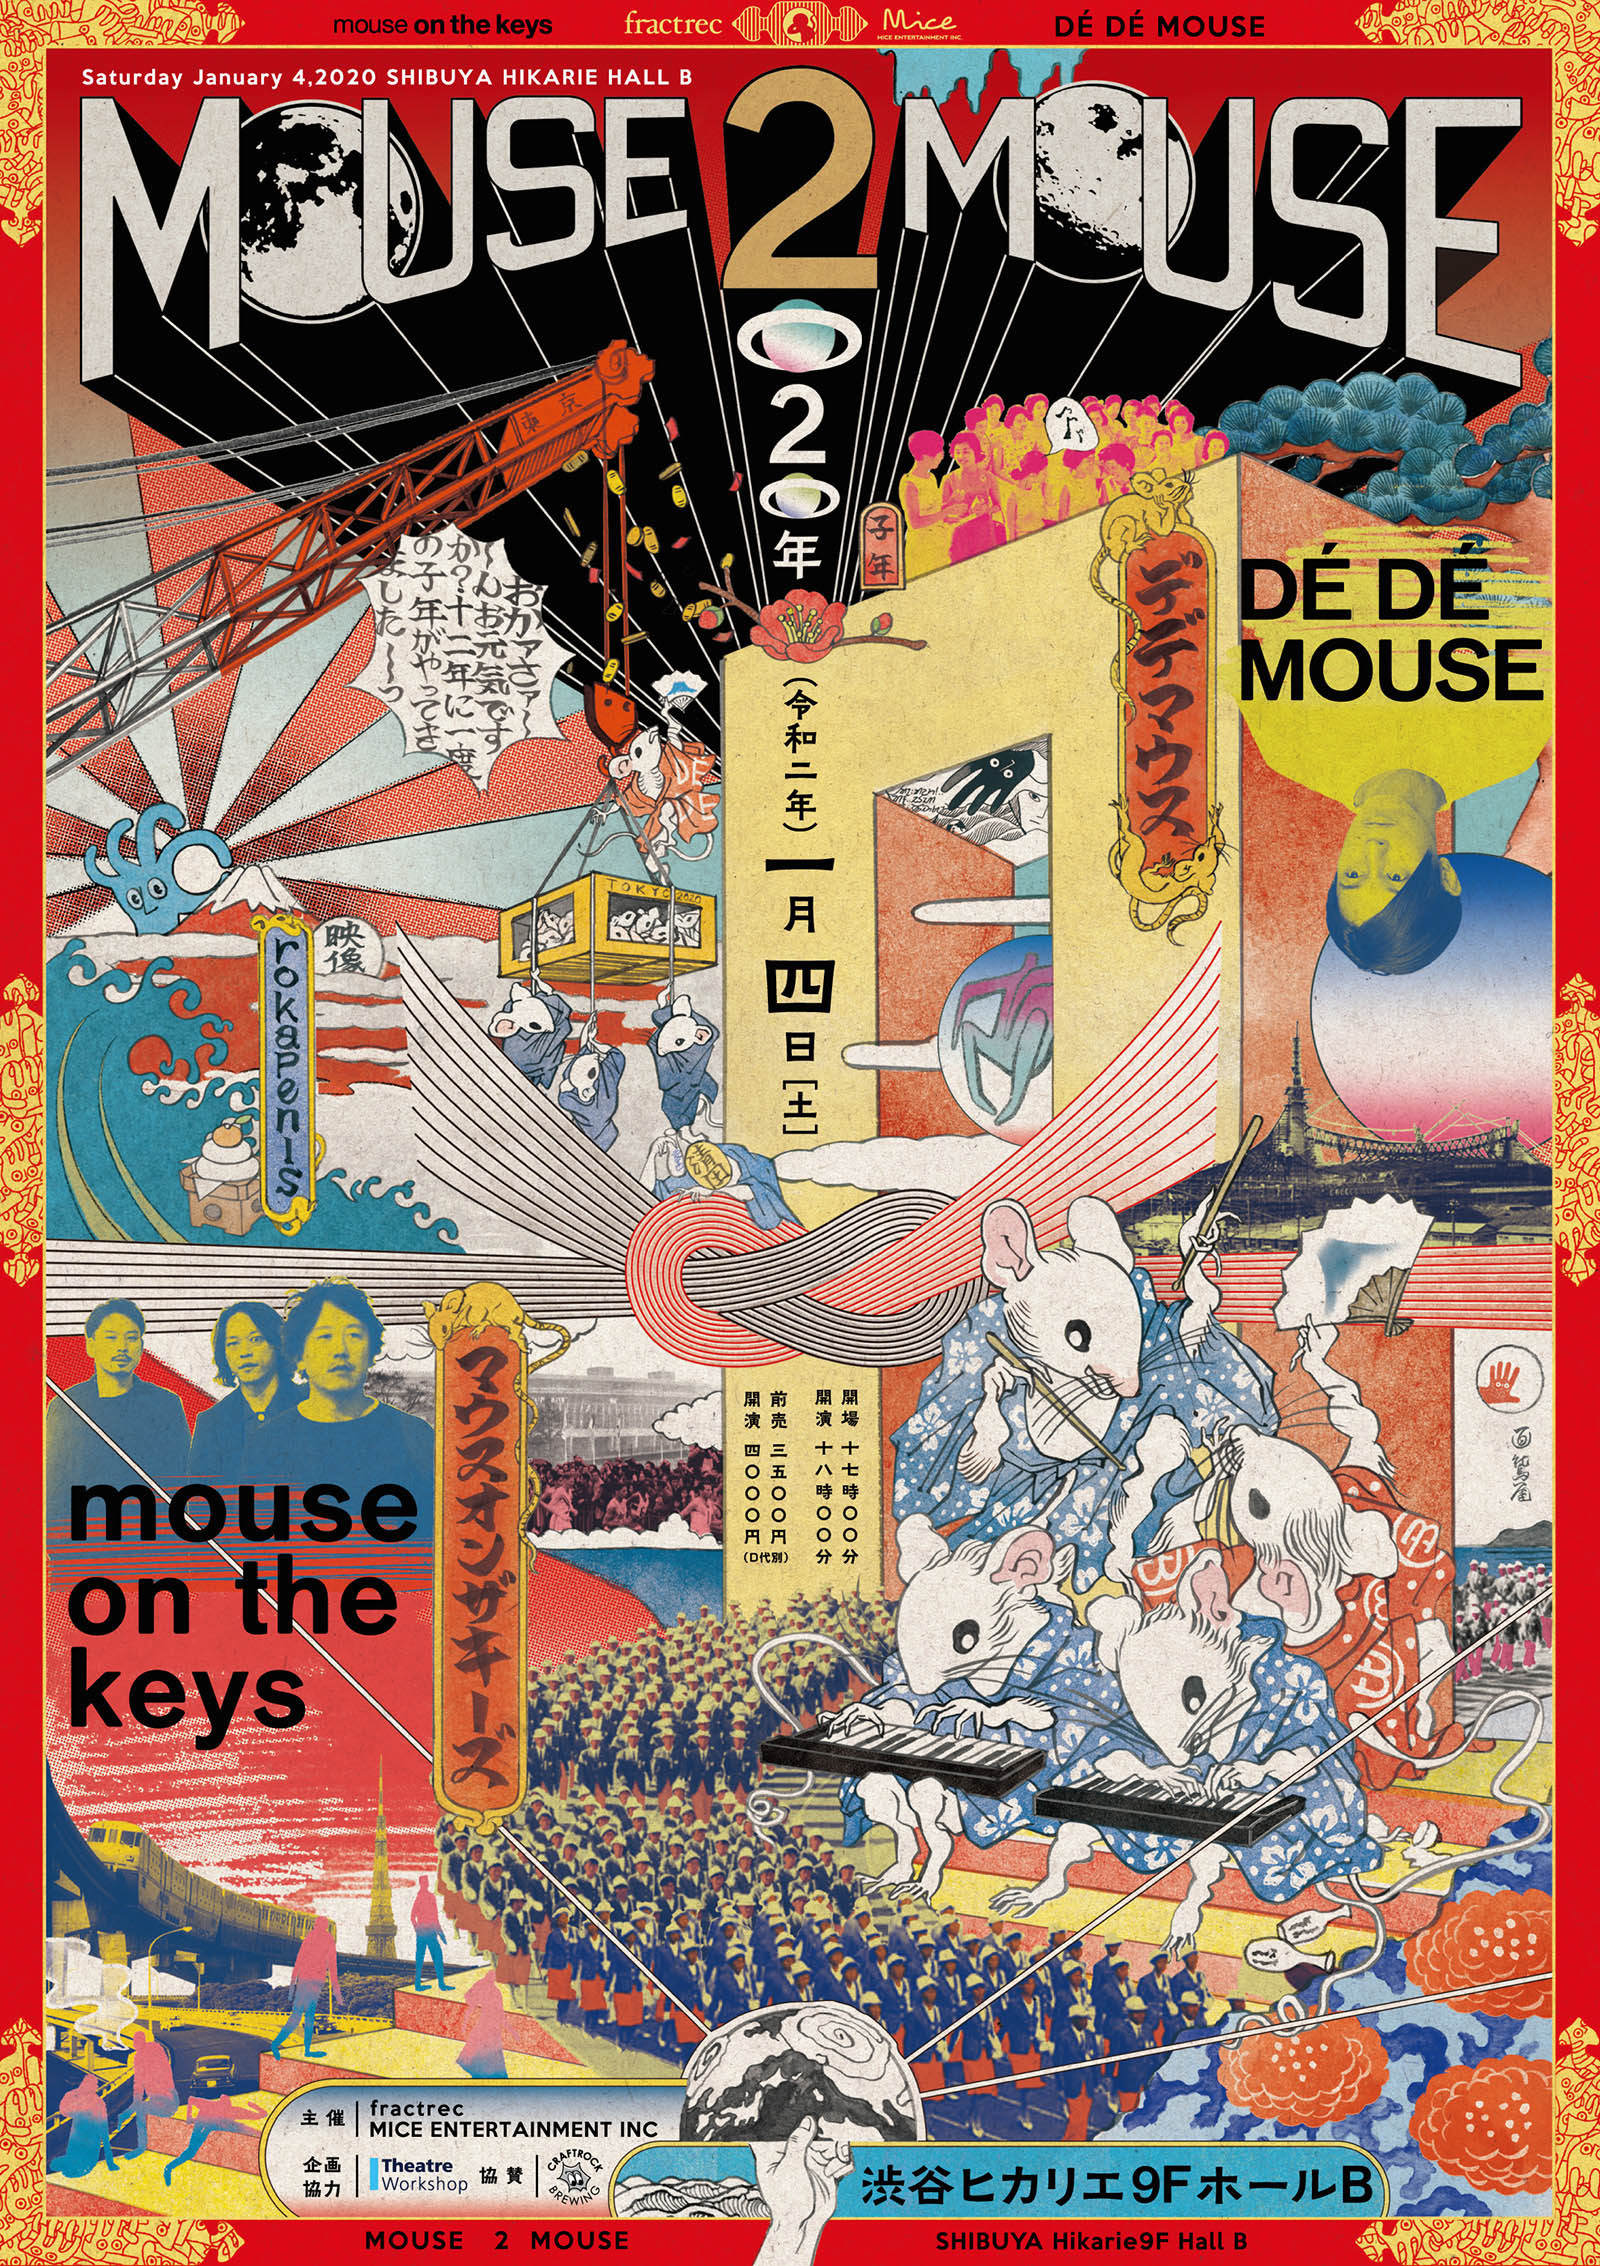 MOUSE 2 MOUSE